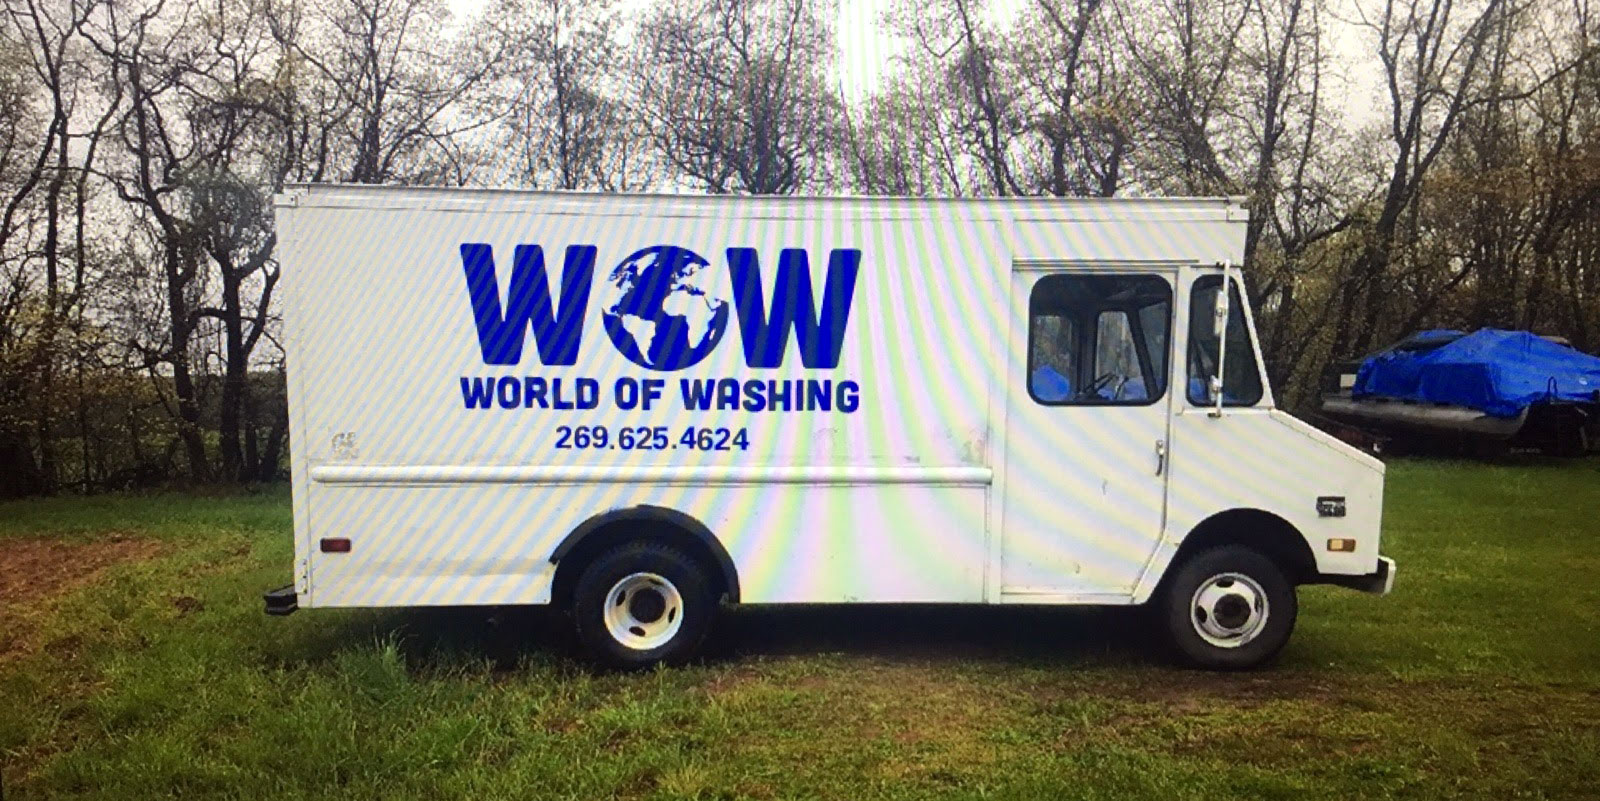 World of Washing